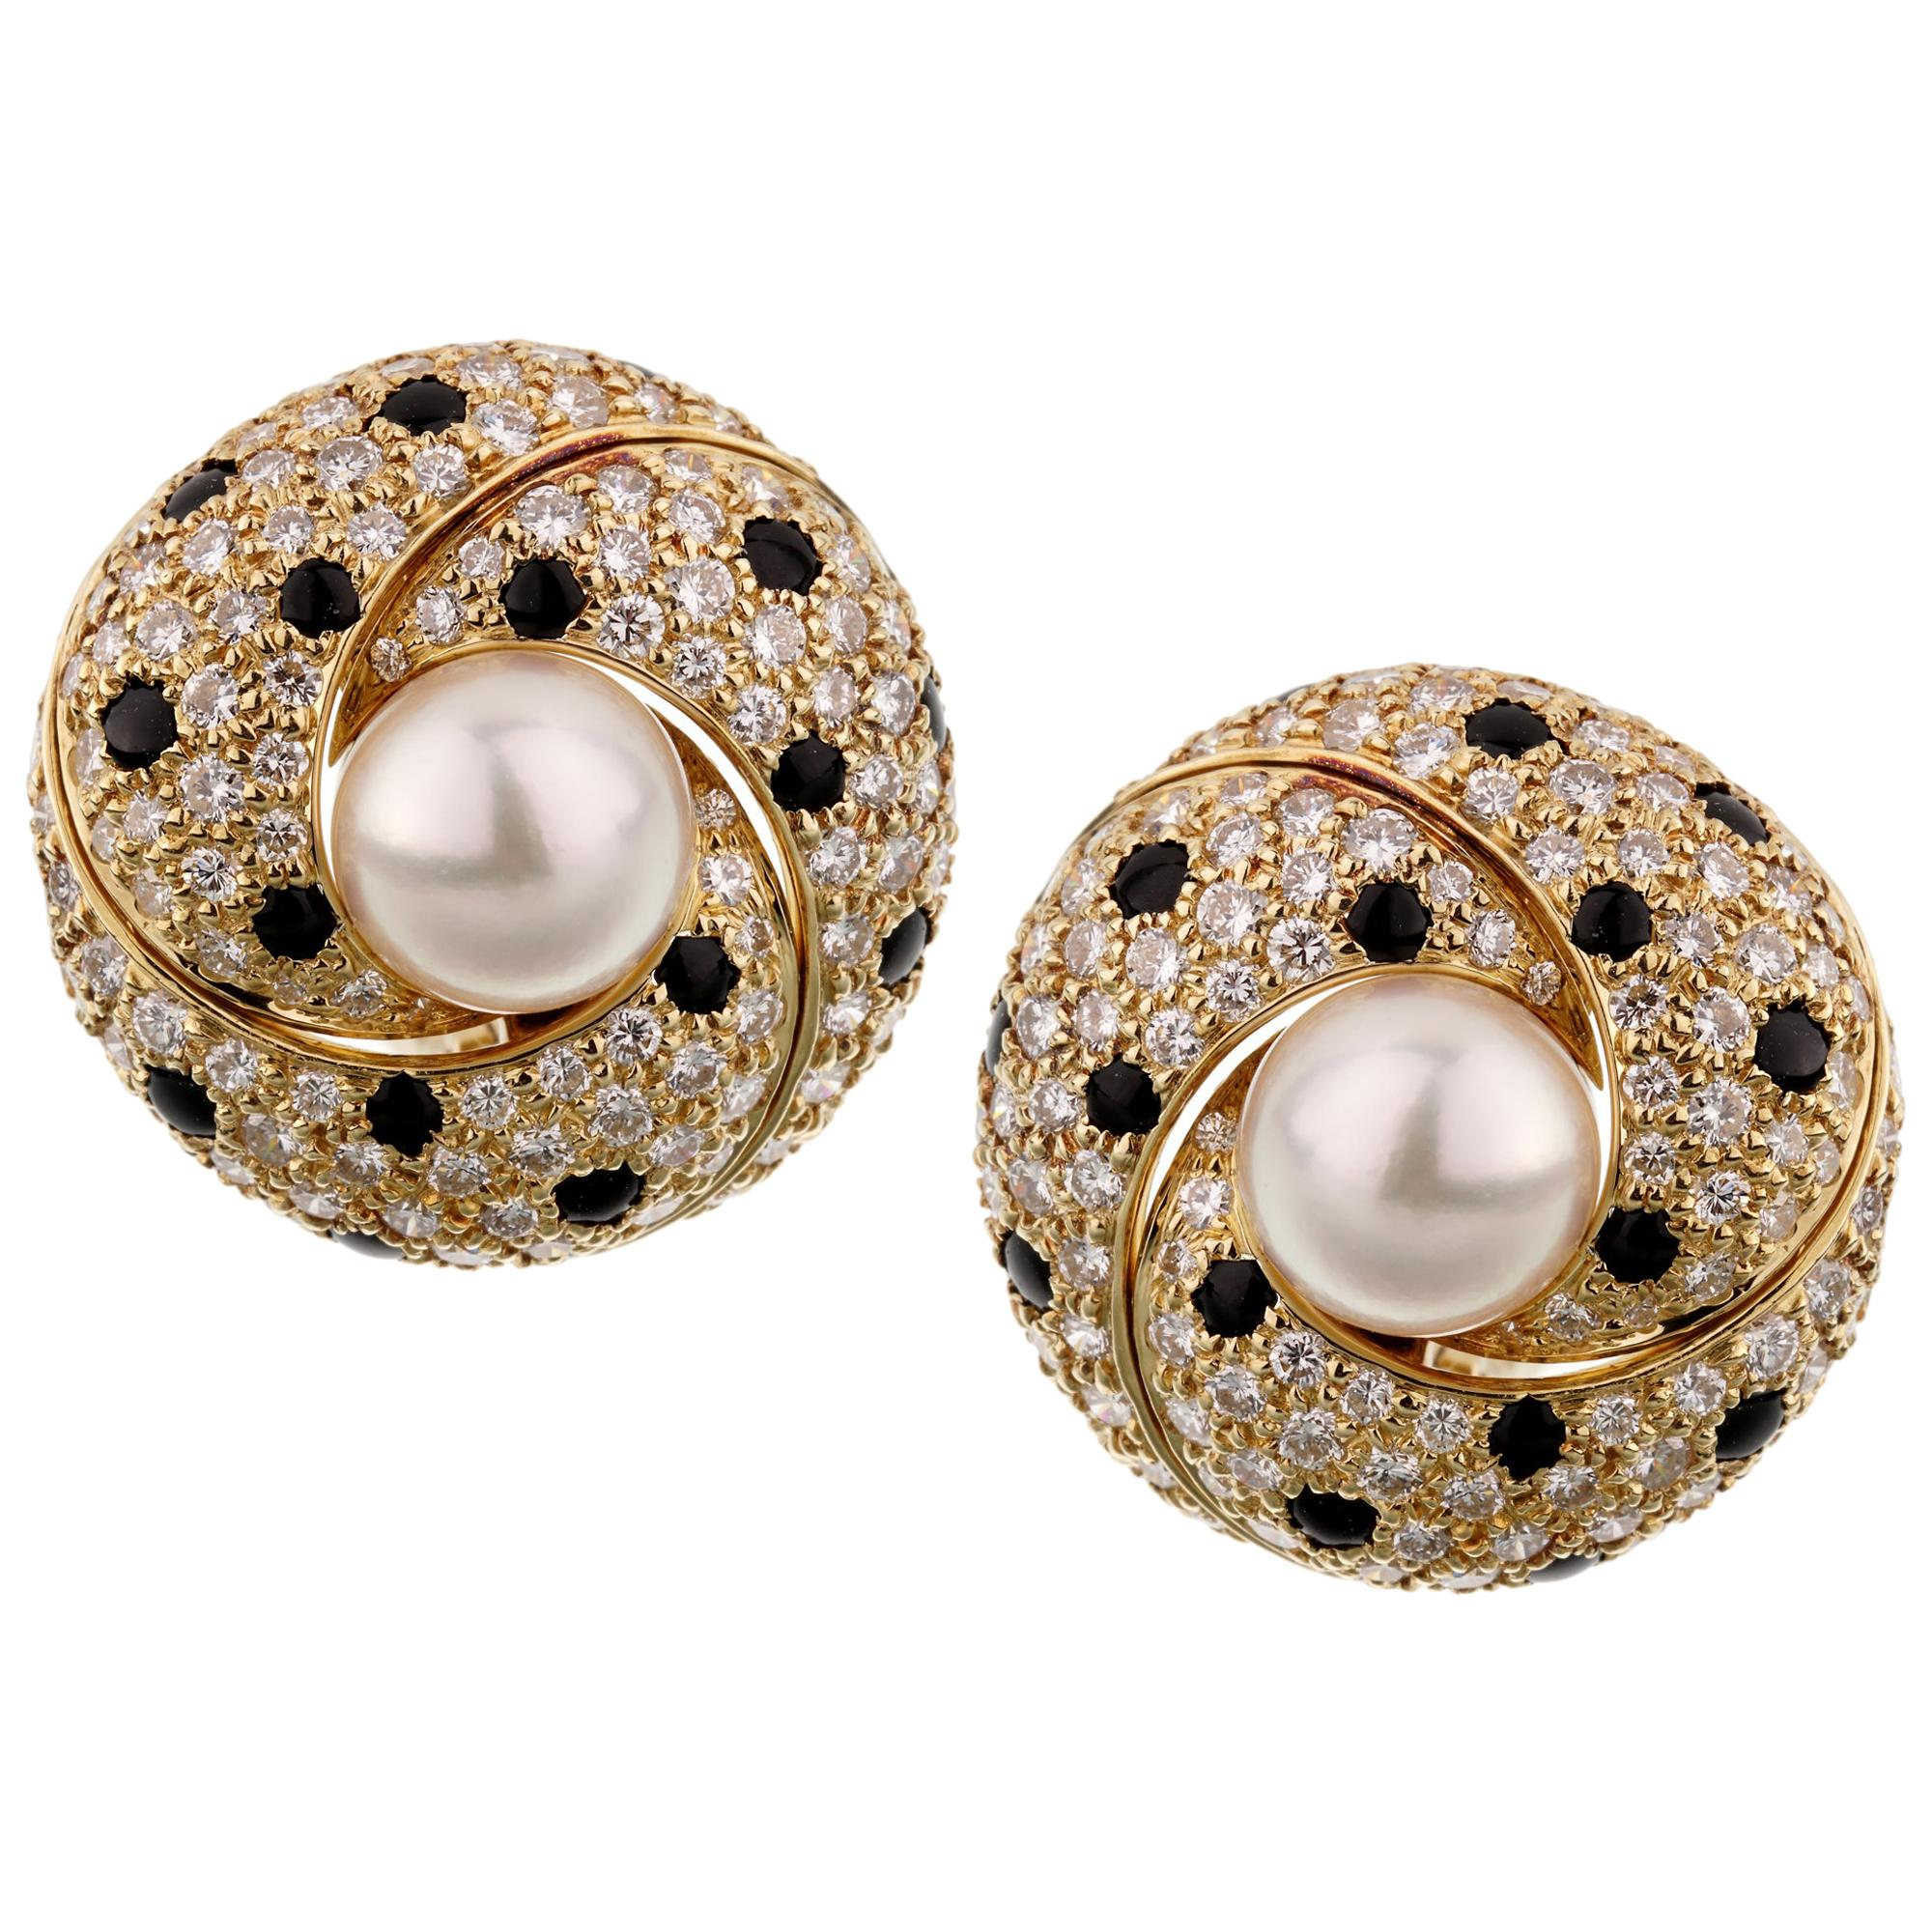 Panthère Earrings